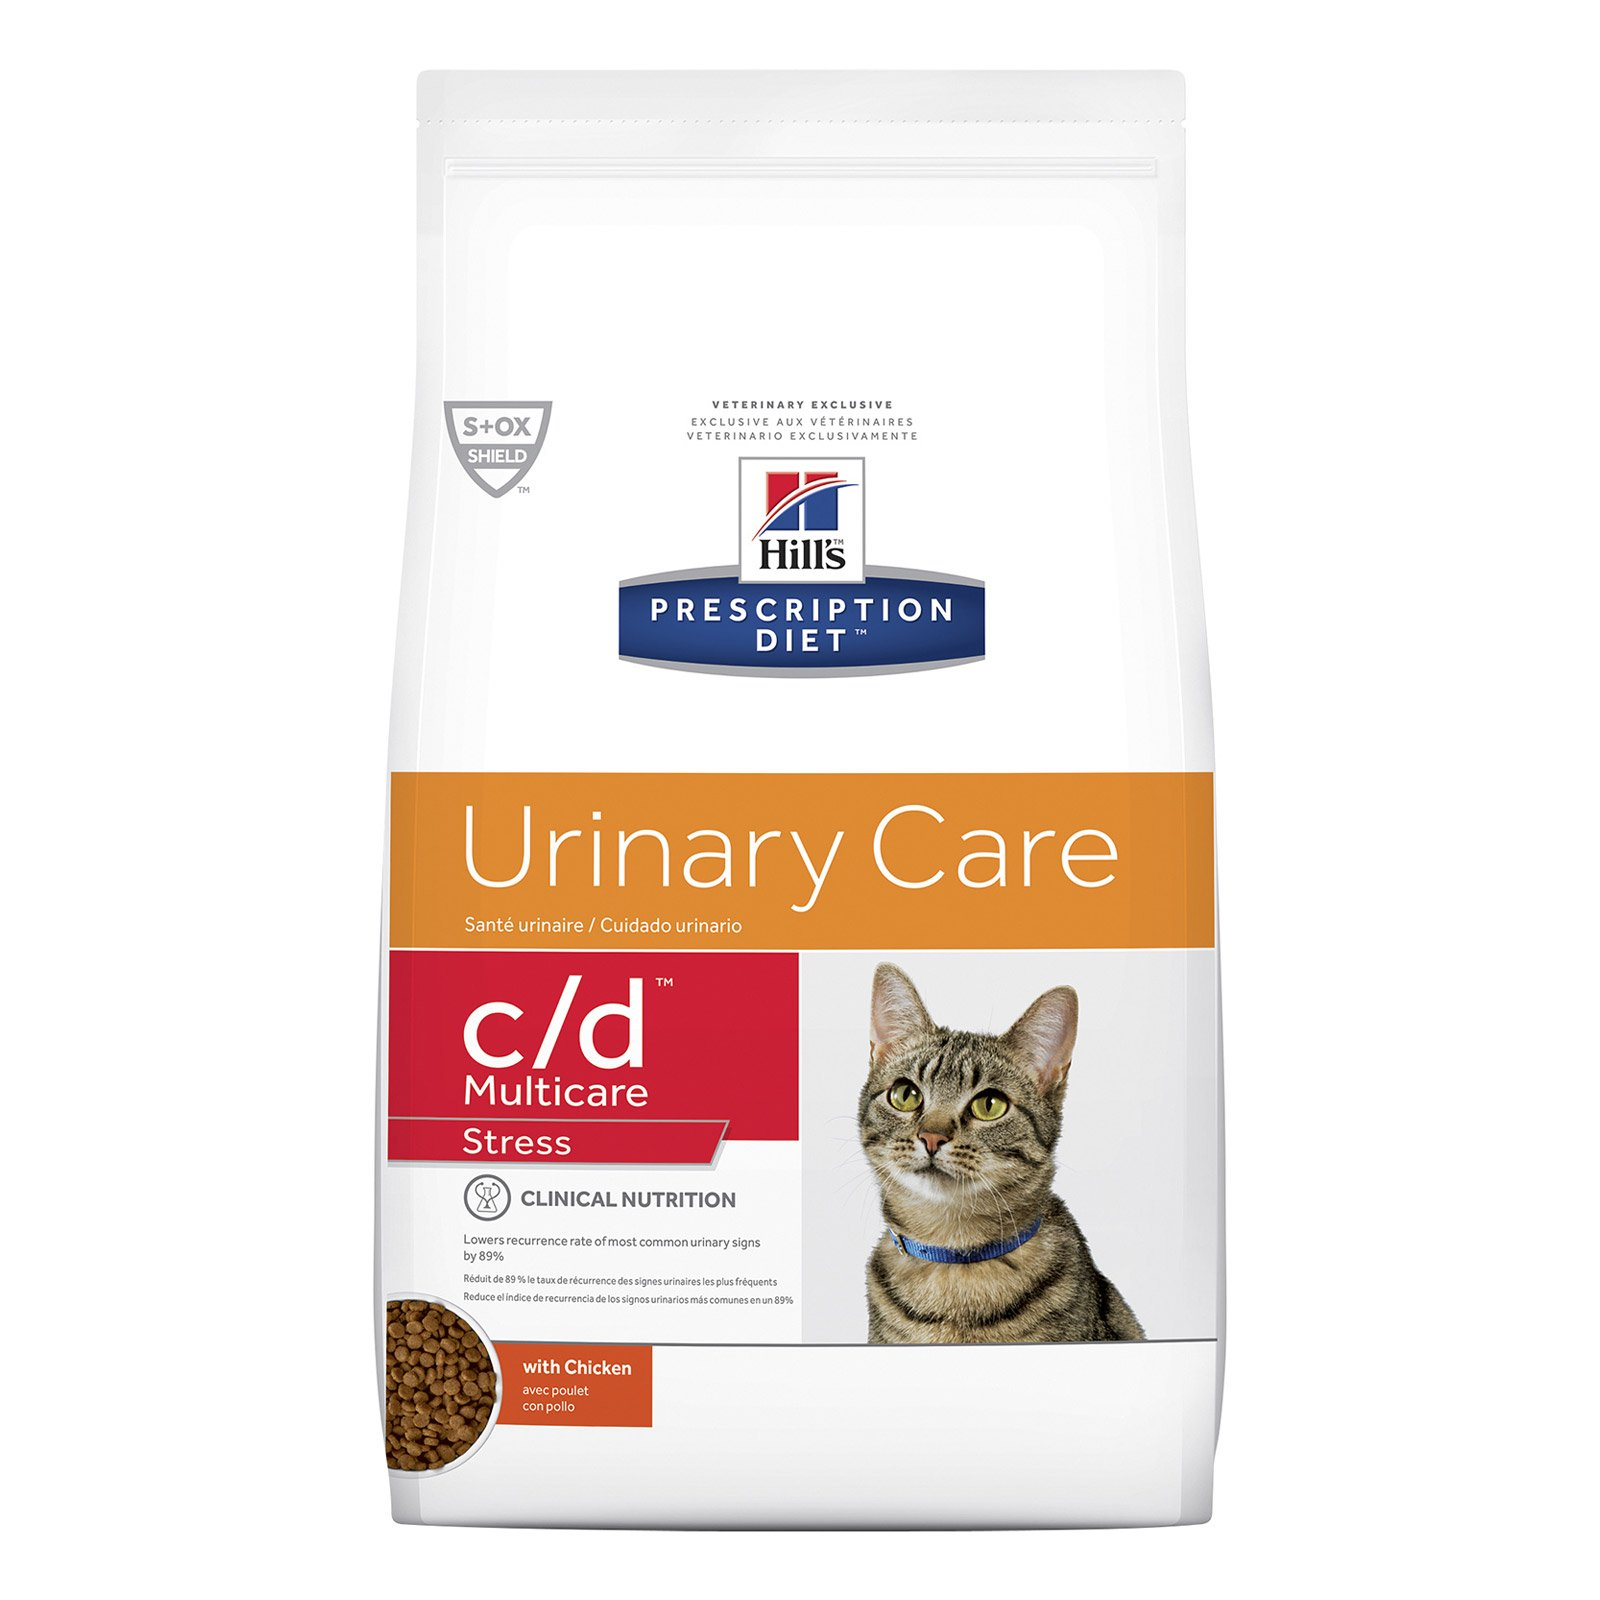 Hill's Prescription Diet c/d Multicare Stress Urinary Care Dry Cat Food